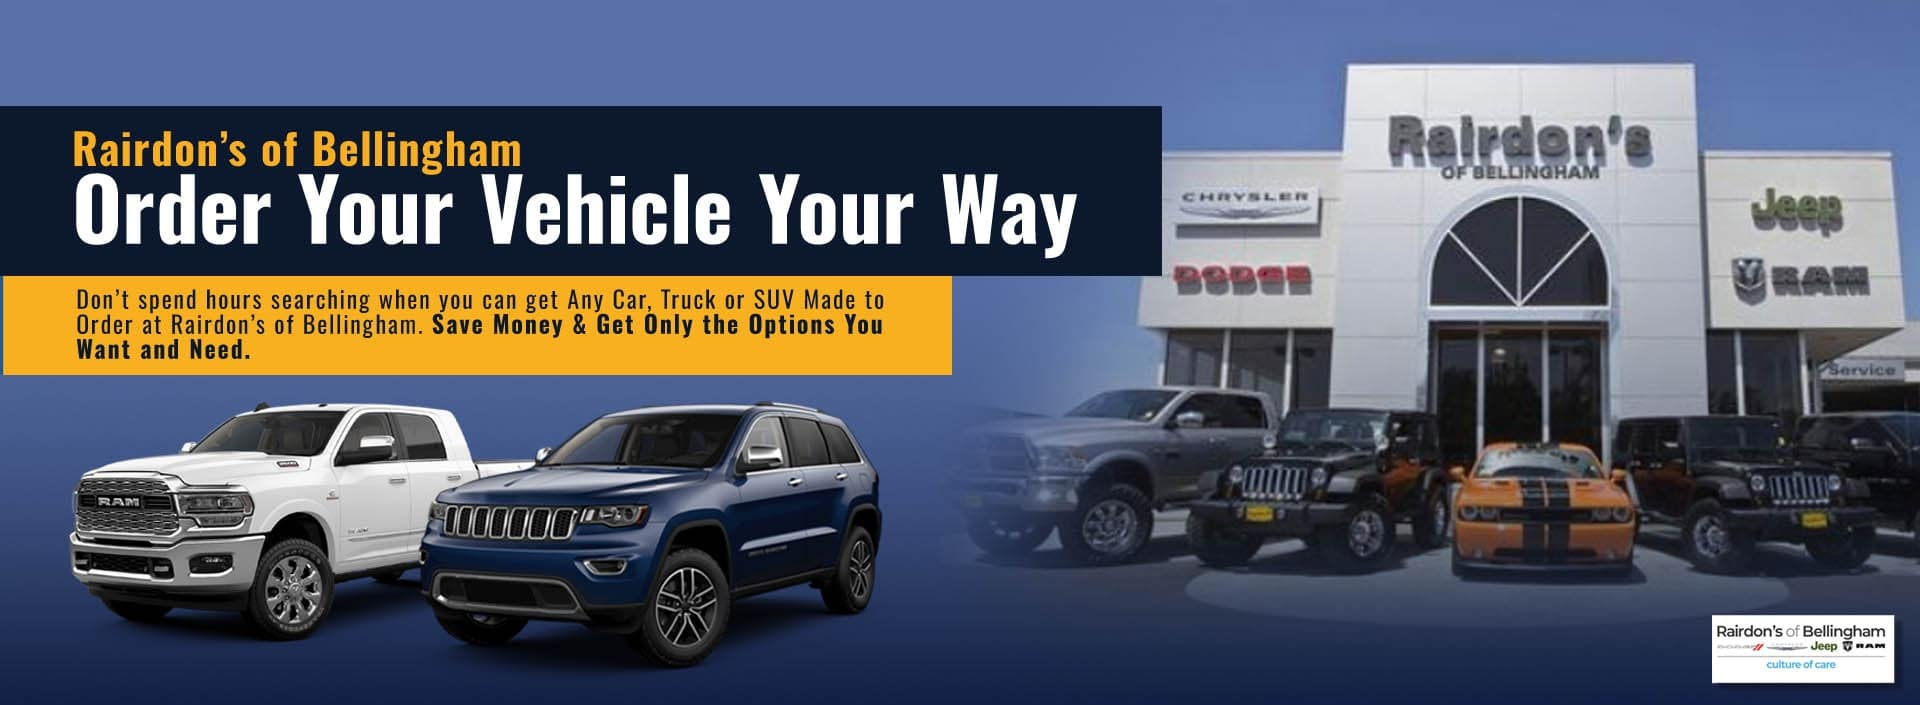 Custom Order your vehicle your way.